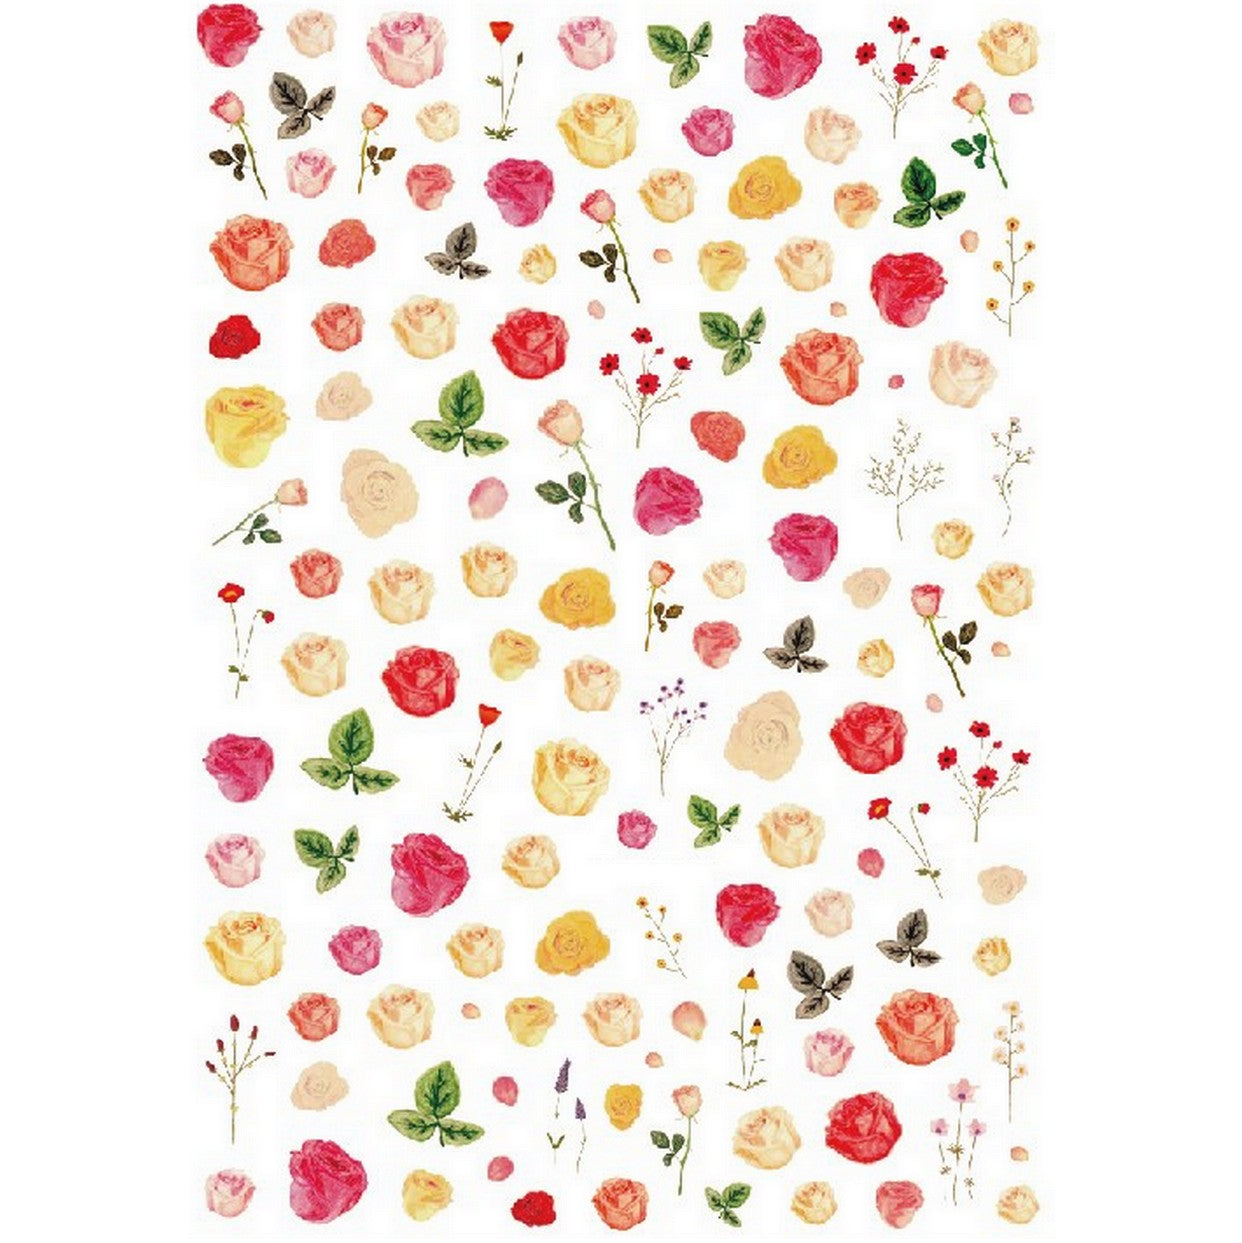 Floral Rose Buds Flower Nail Stickers